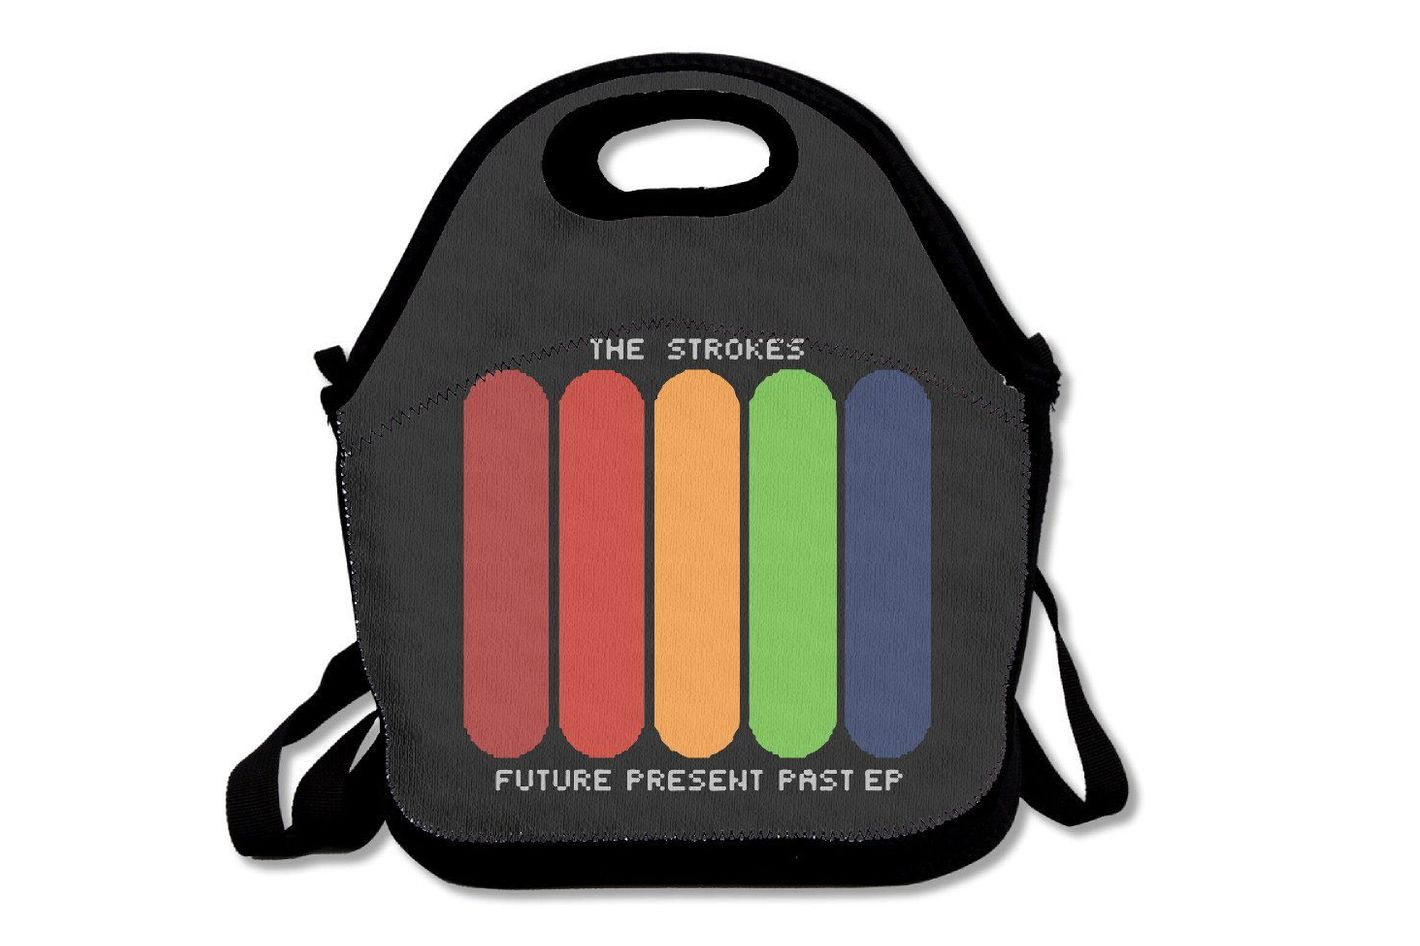 The Strokes Lunch Tote